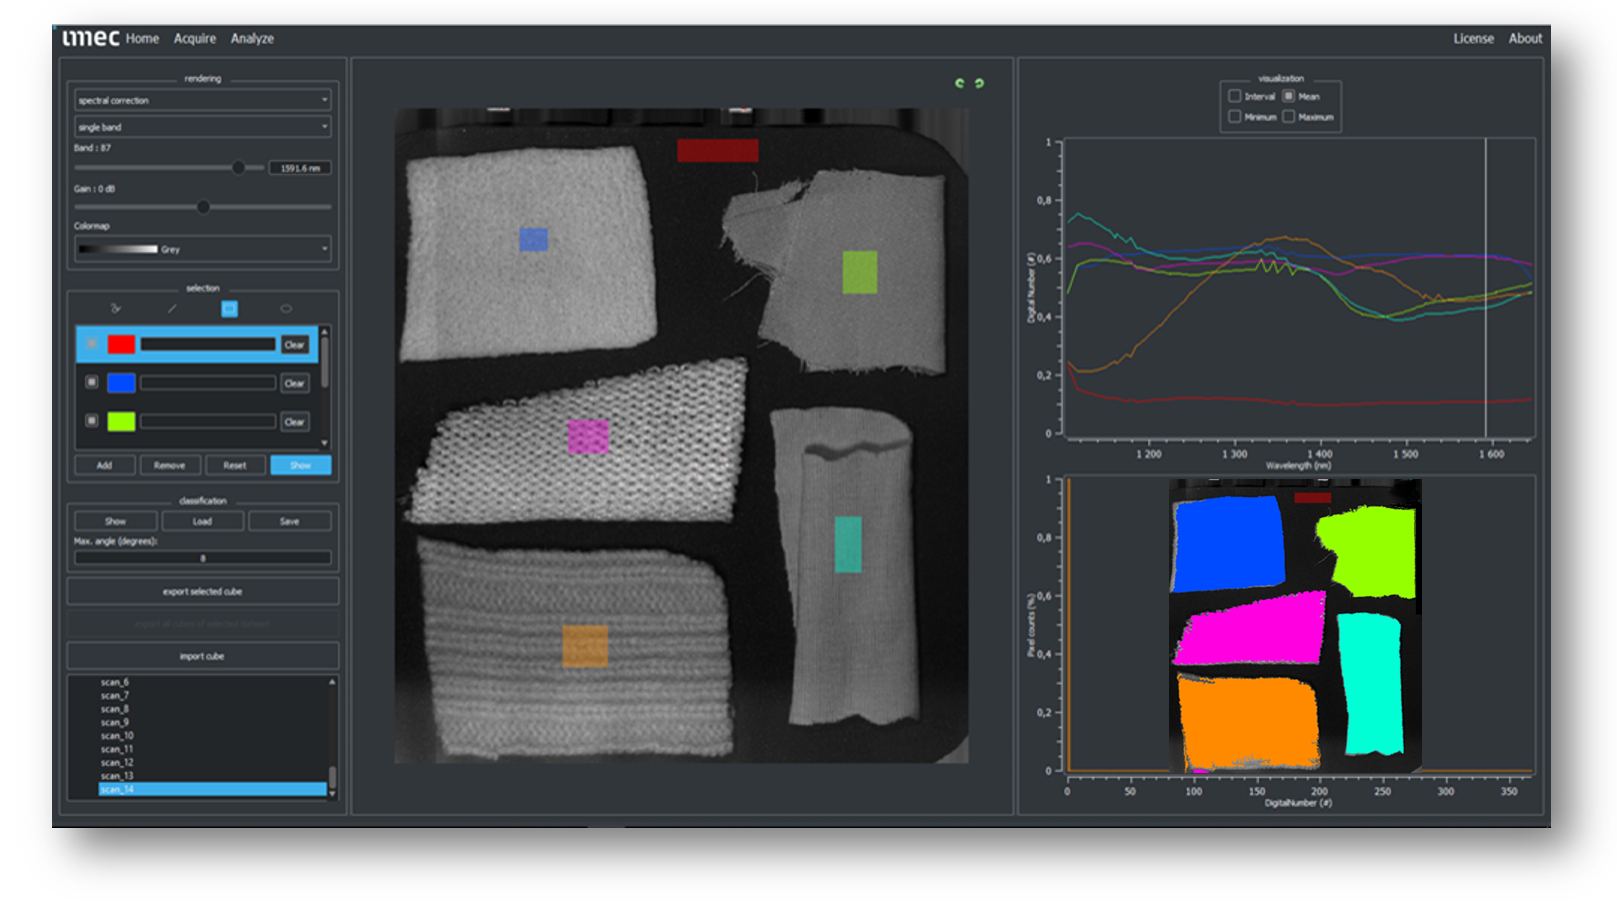 Hyperspectral imaging in SWIR range with imec LS 100+ bands in 1.1 – 1.7um range enables classification of various different textiles